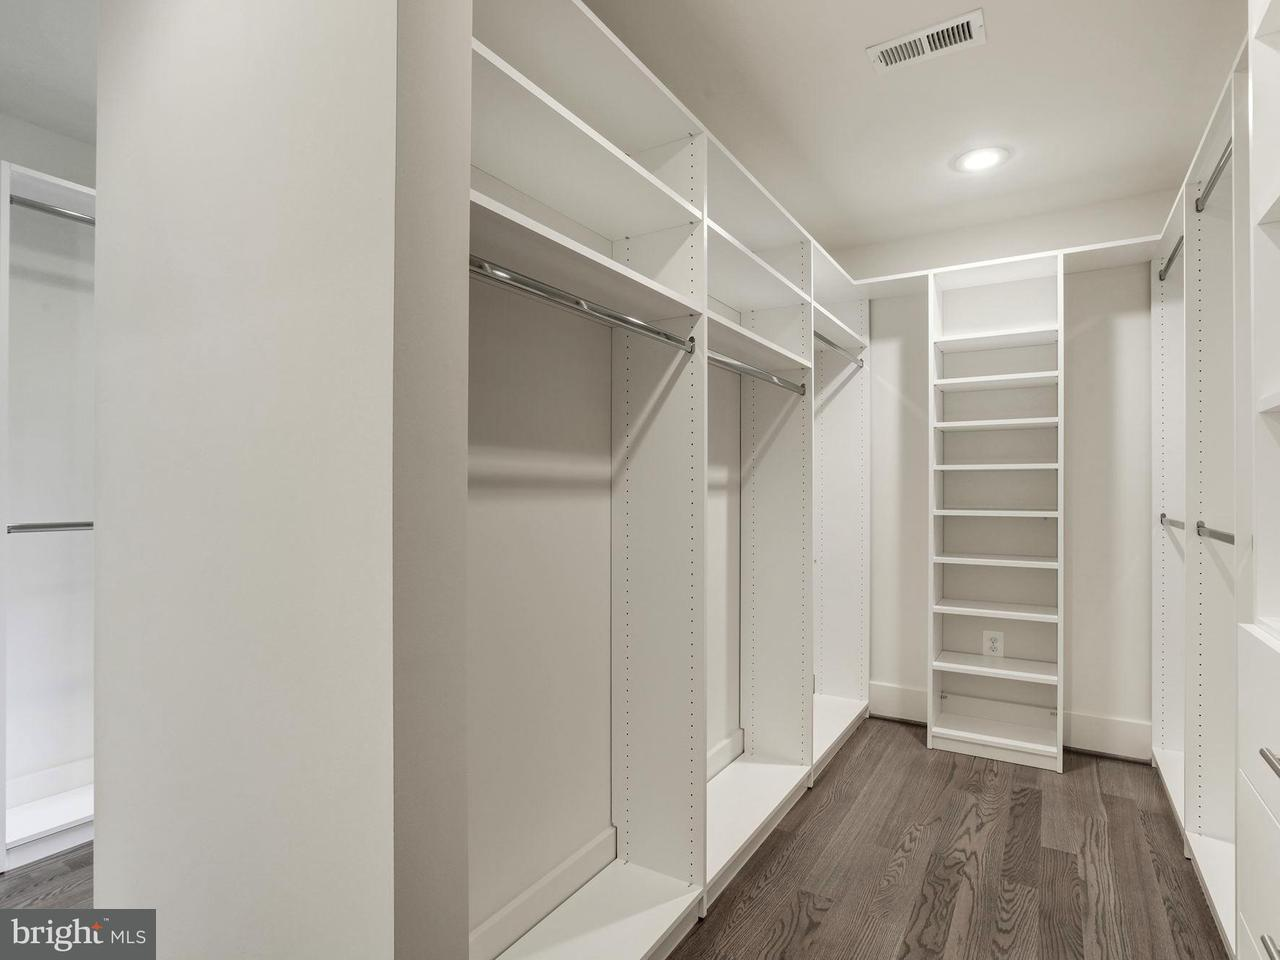 Additional photo for property listing at 816 Park Avenue 816 Park Avenue 弗尔斯切赫, 弗吉尼亚州 22046 美国